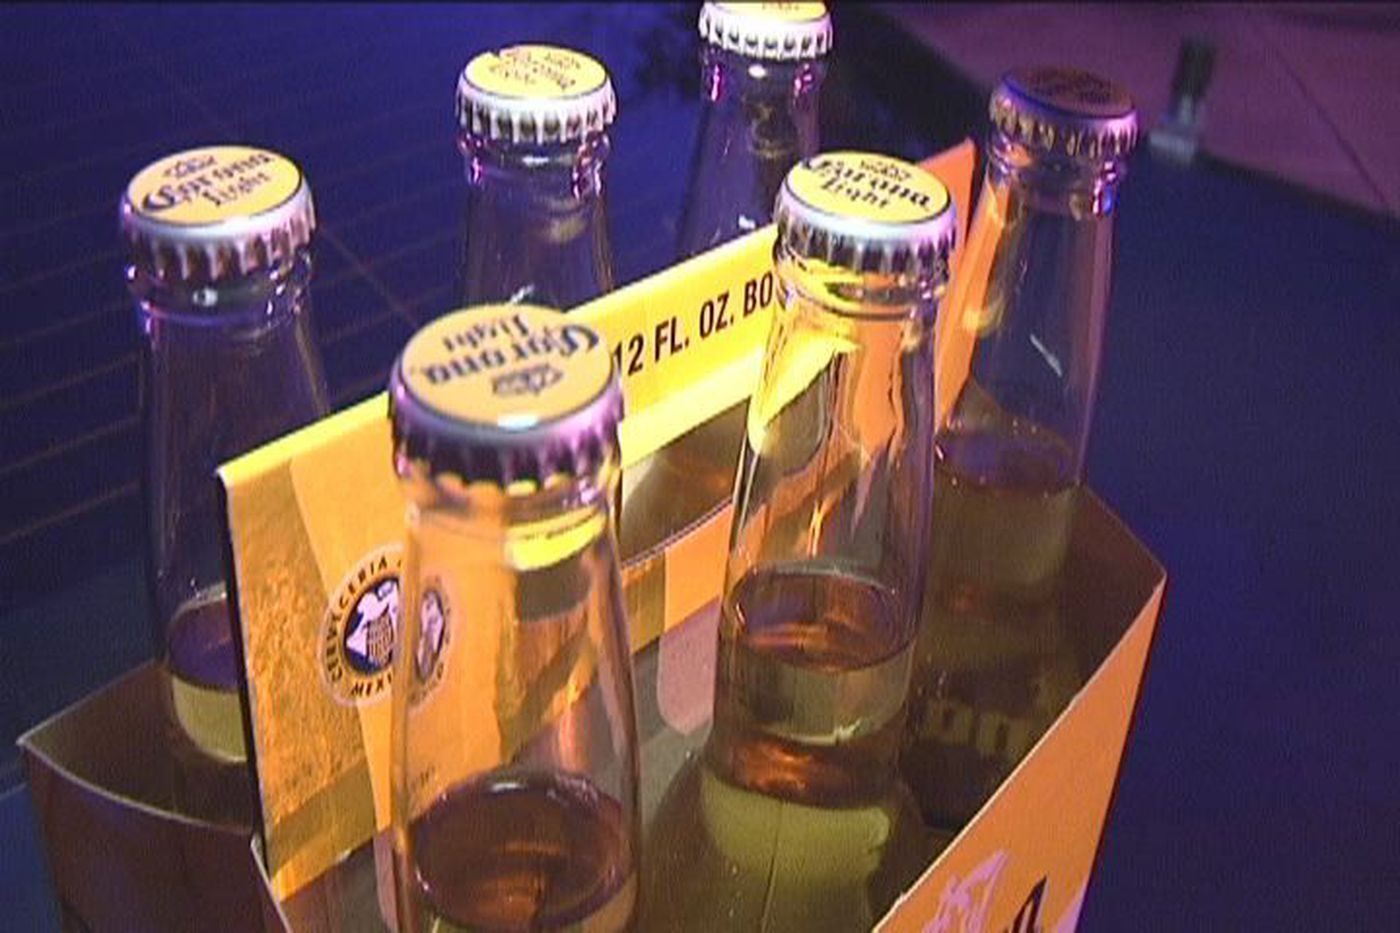 Cracking down on underage alcohol sales